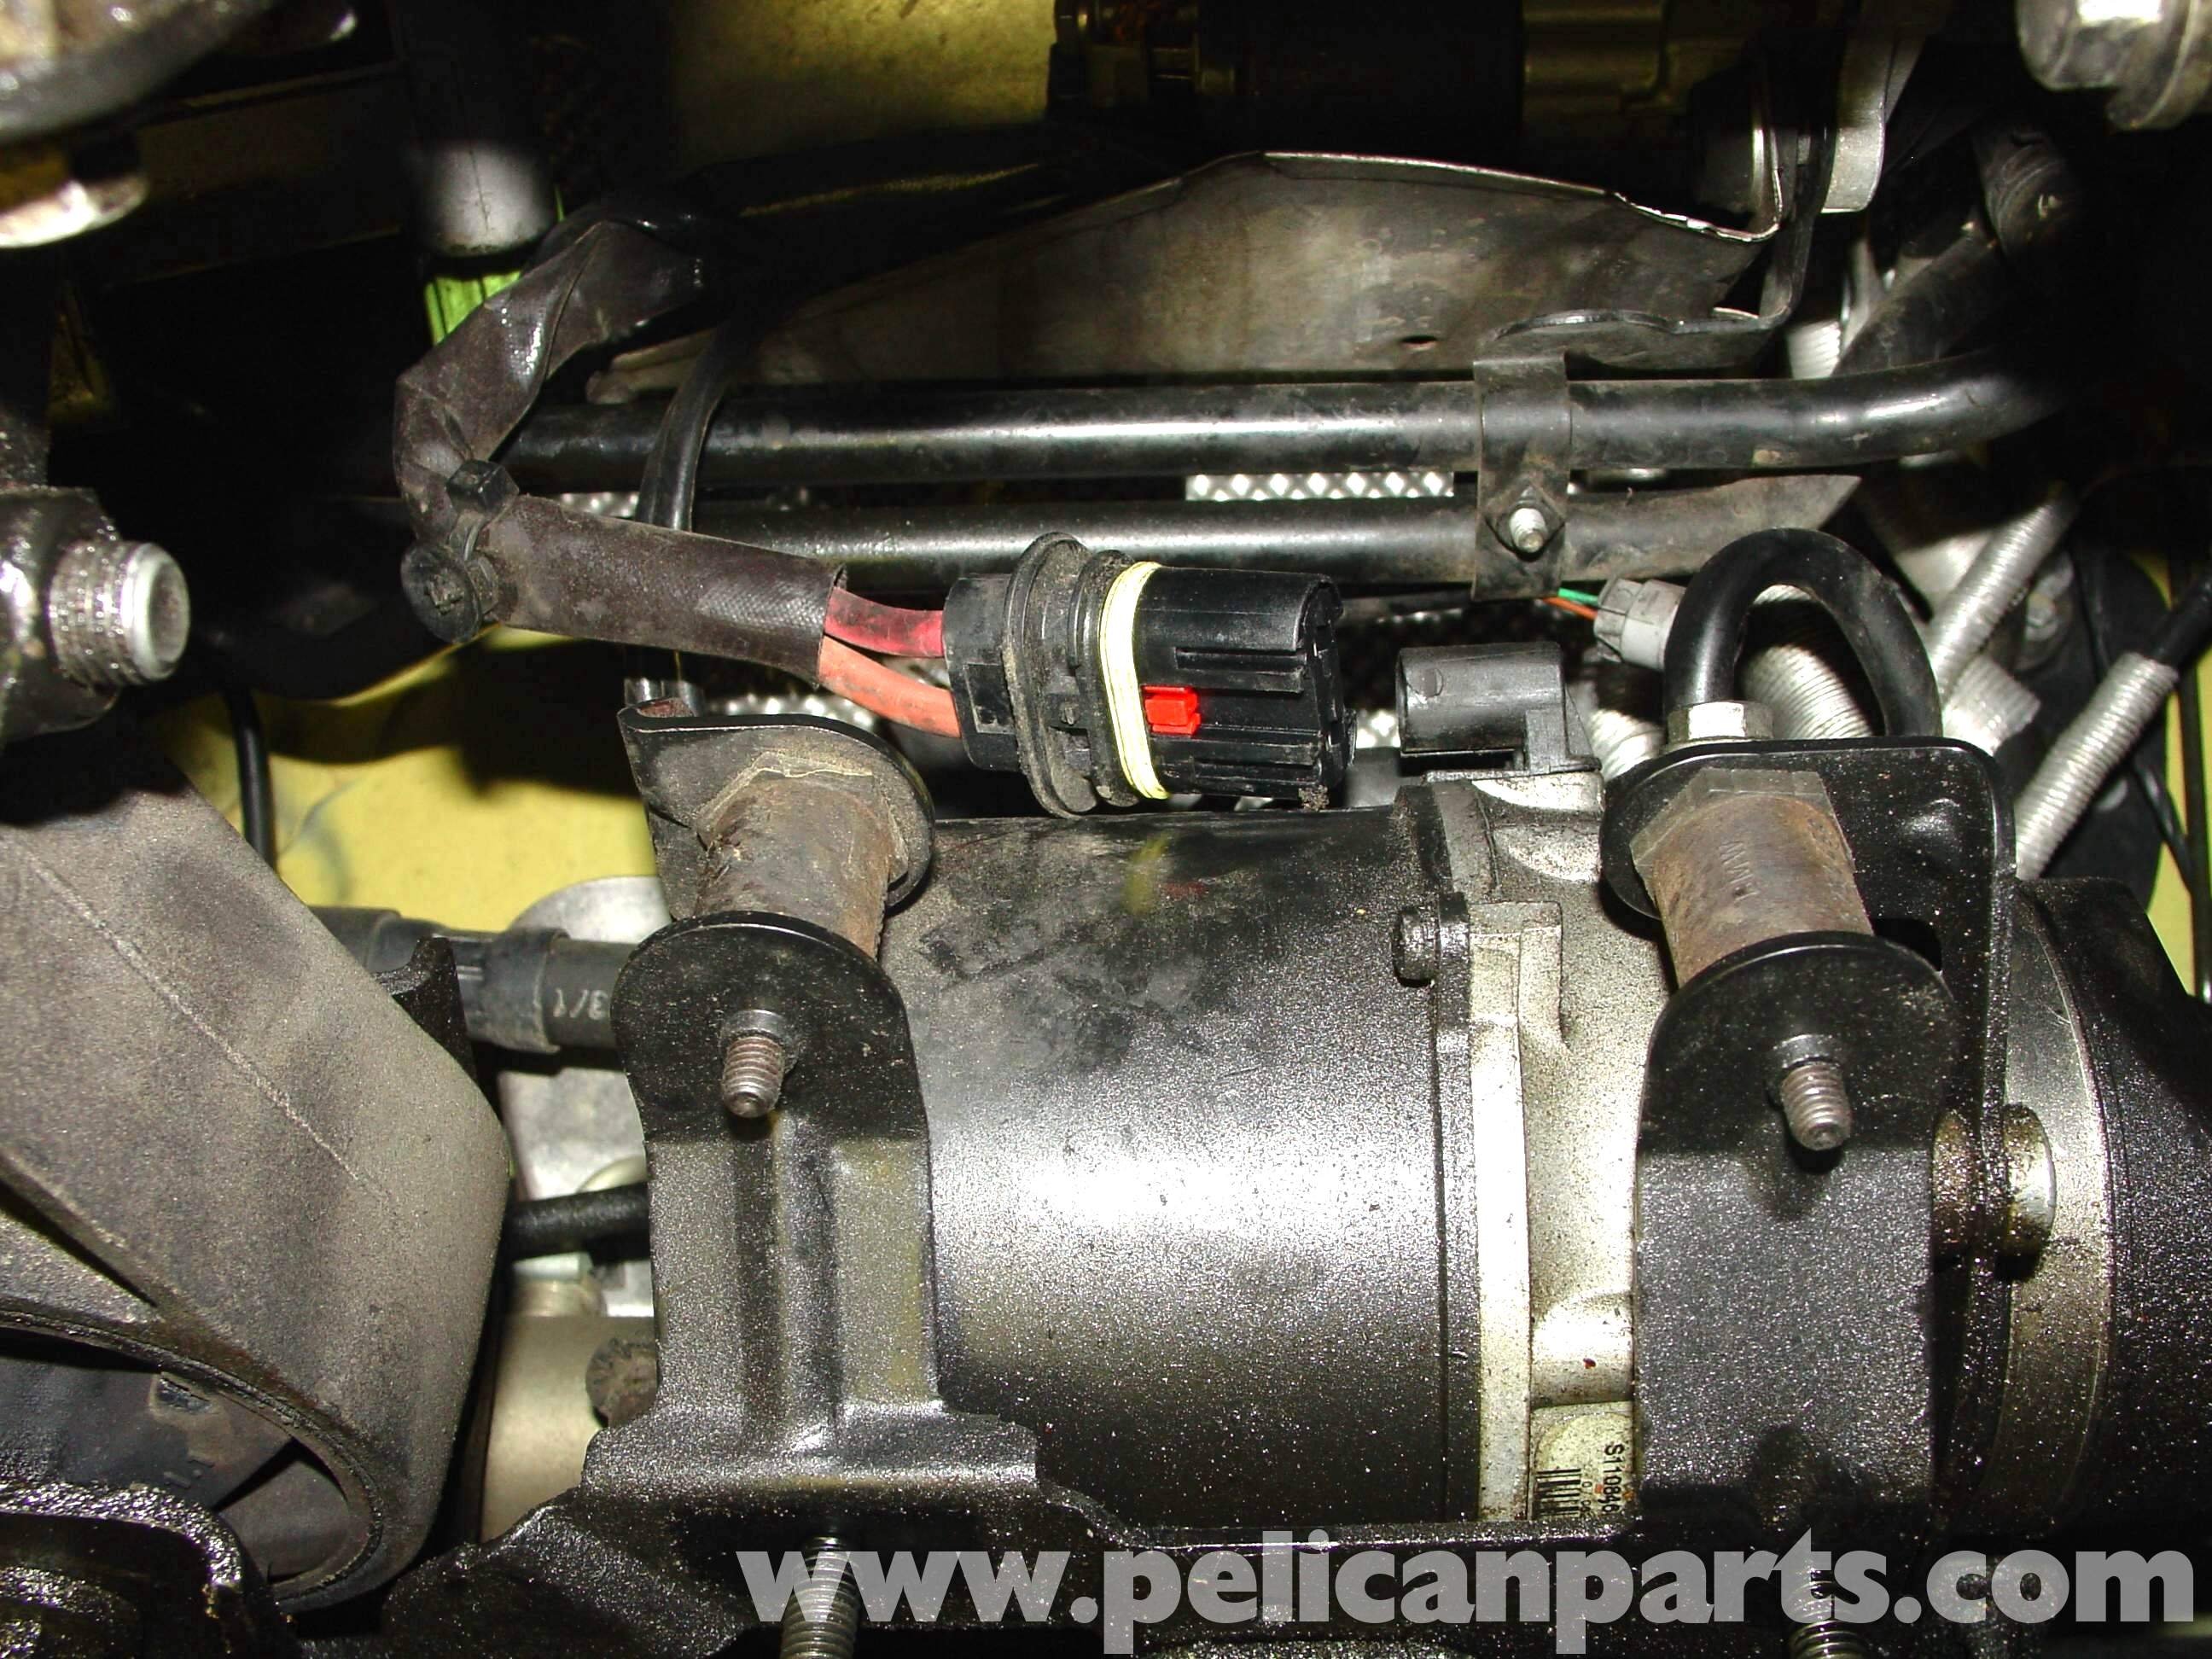 Mini Cooper Power Steering Wiring Harness Data Diagrams Pelican Technical Article Pump Replacement Rh Pelicanparts Com 2010 Radio